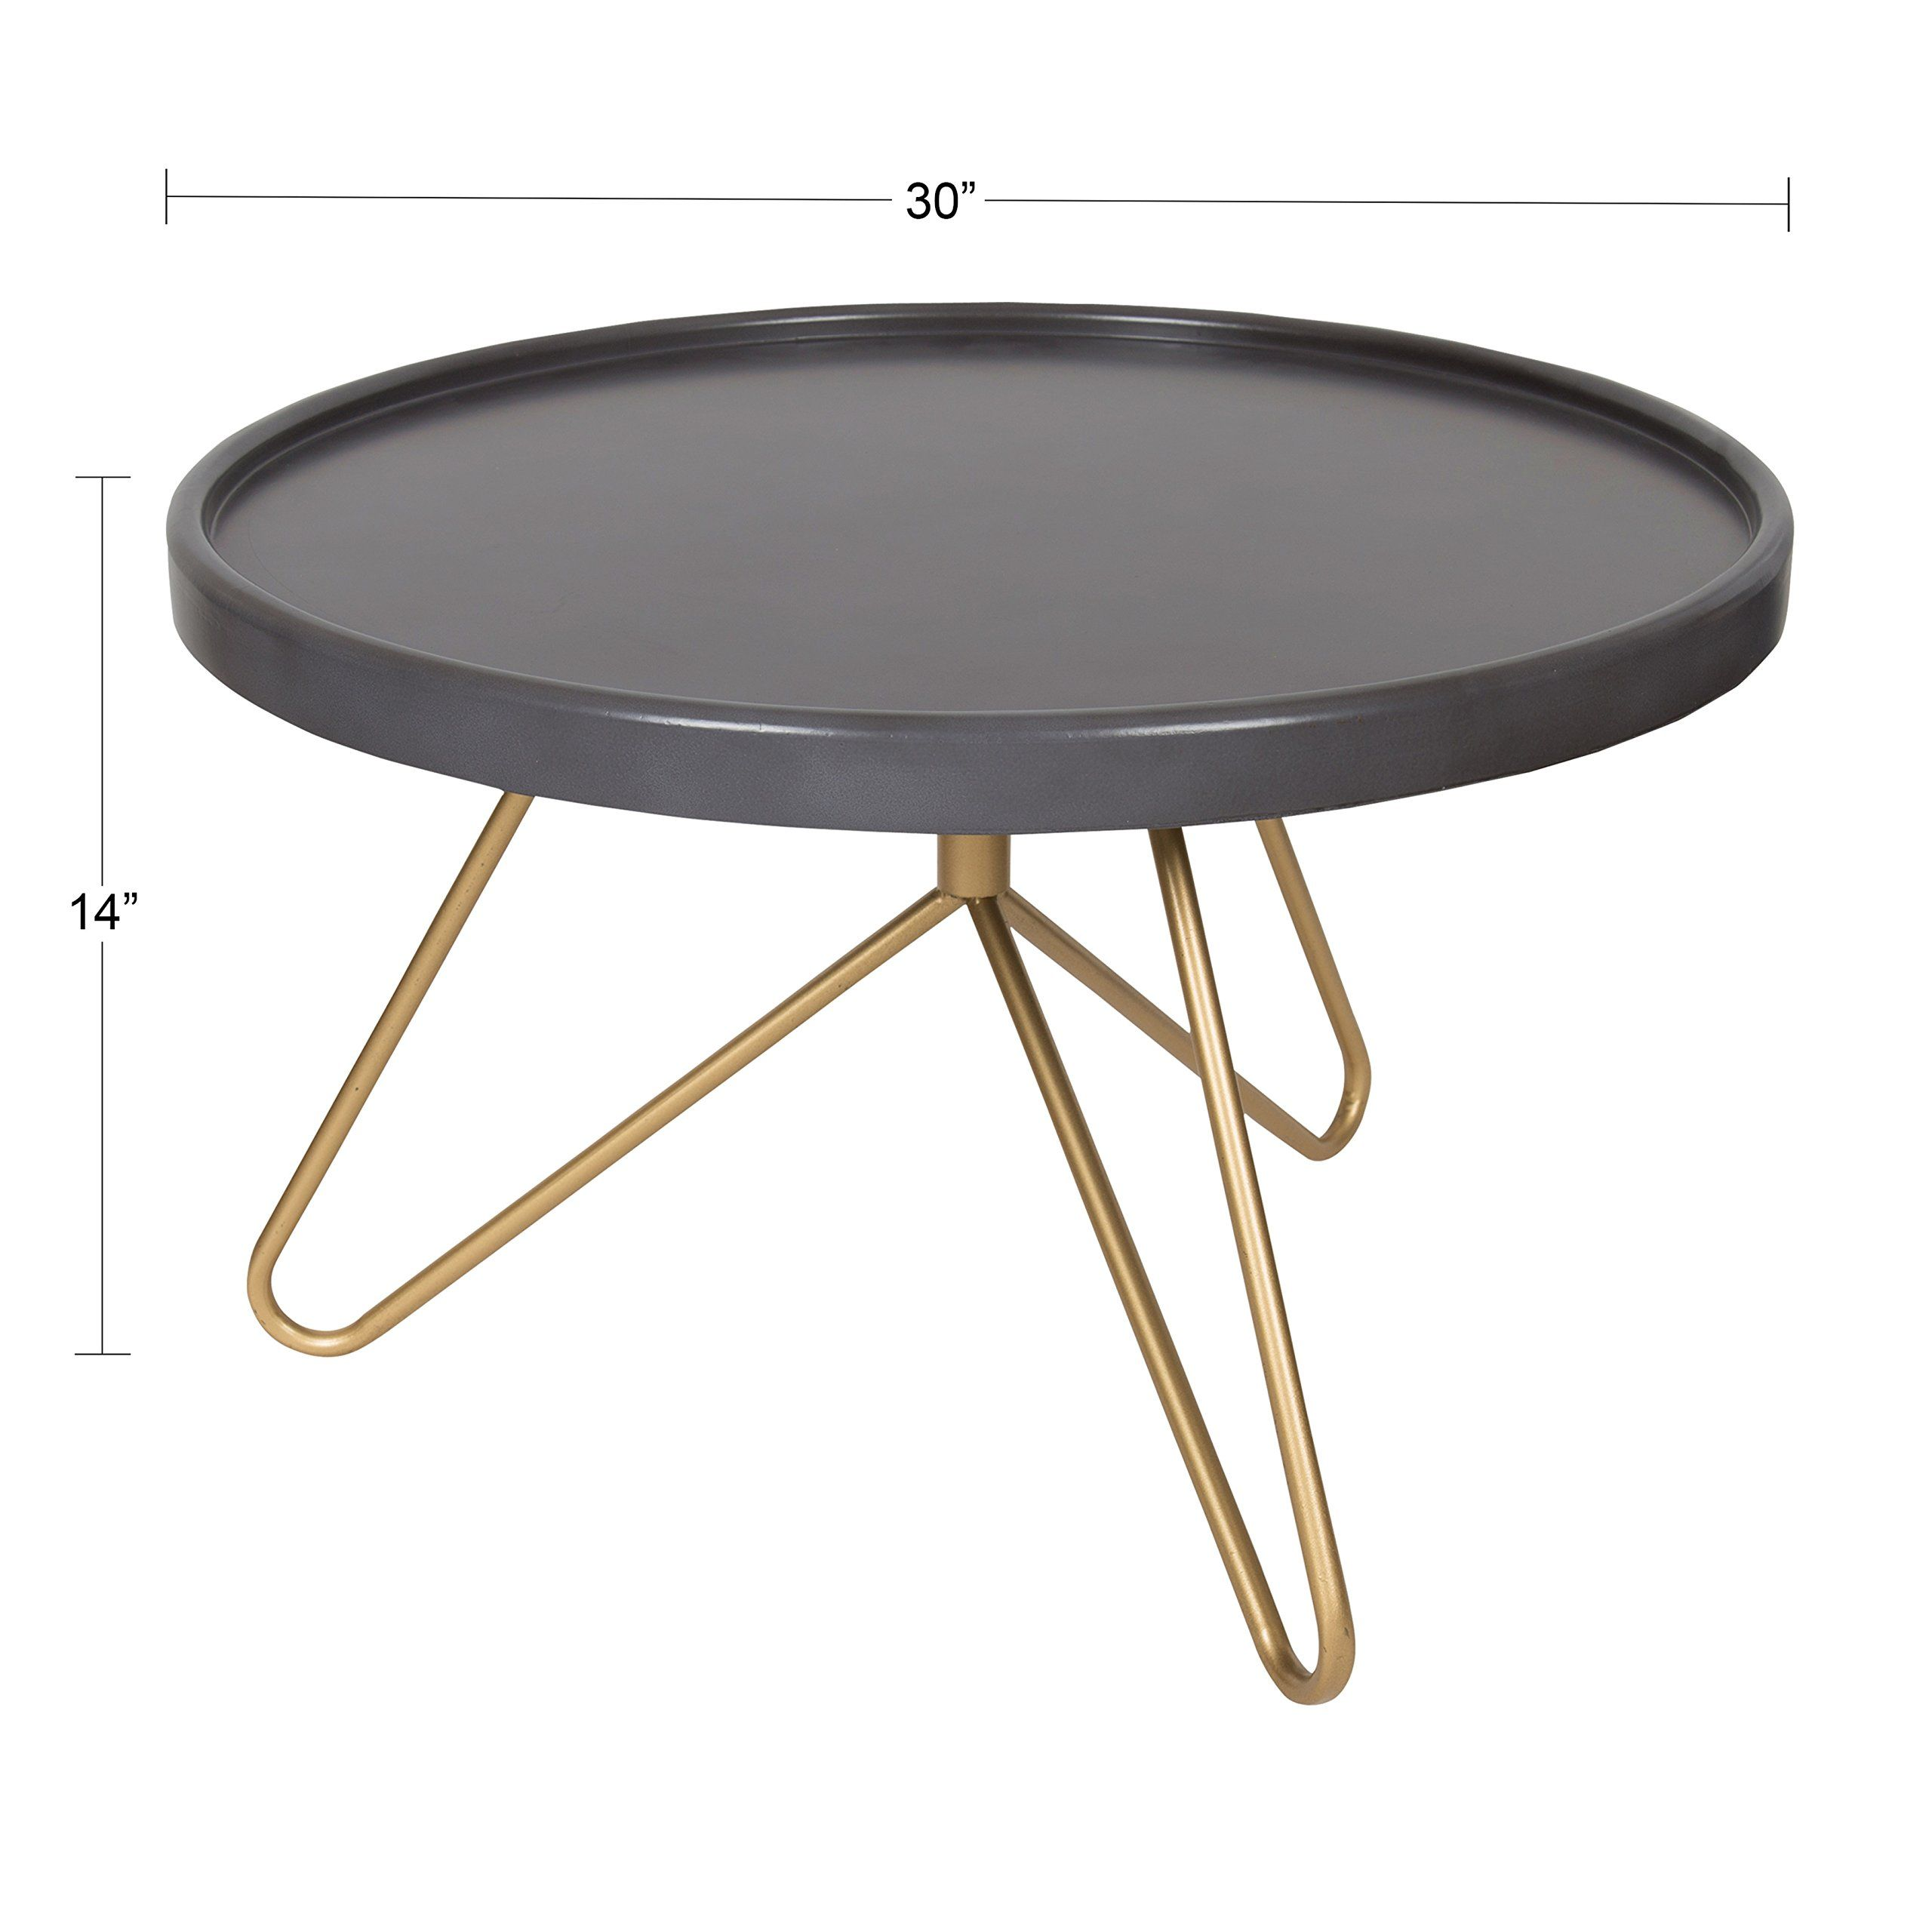 Kate And Laurel Maxey 30inch Round Coffee Table Gray And Gold More Details Could Be Located At The Photo Url This Round Coffee Table Table Coffee Table [ 2560 x 2560 Pixel ]